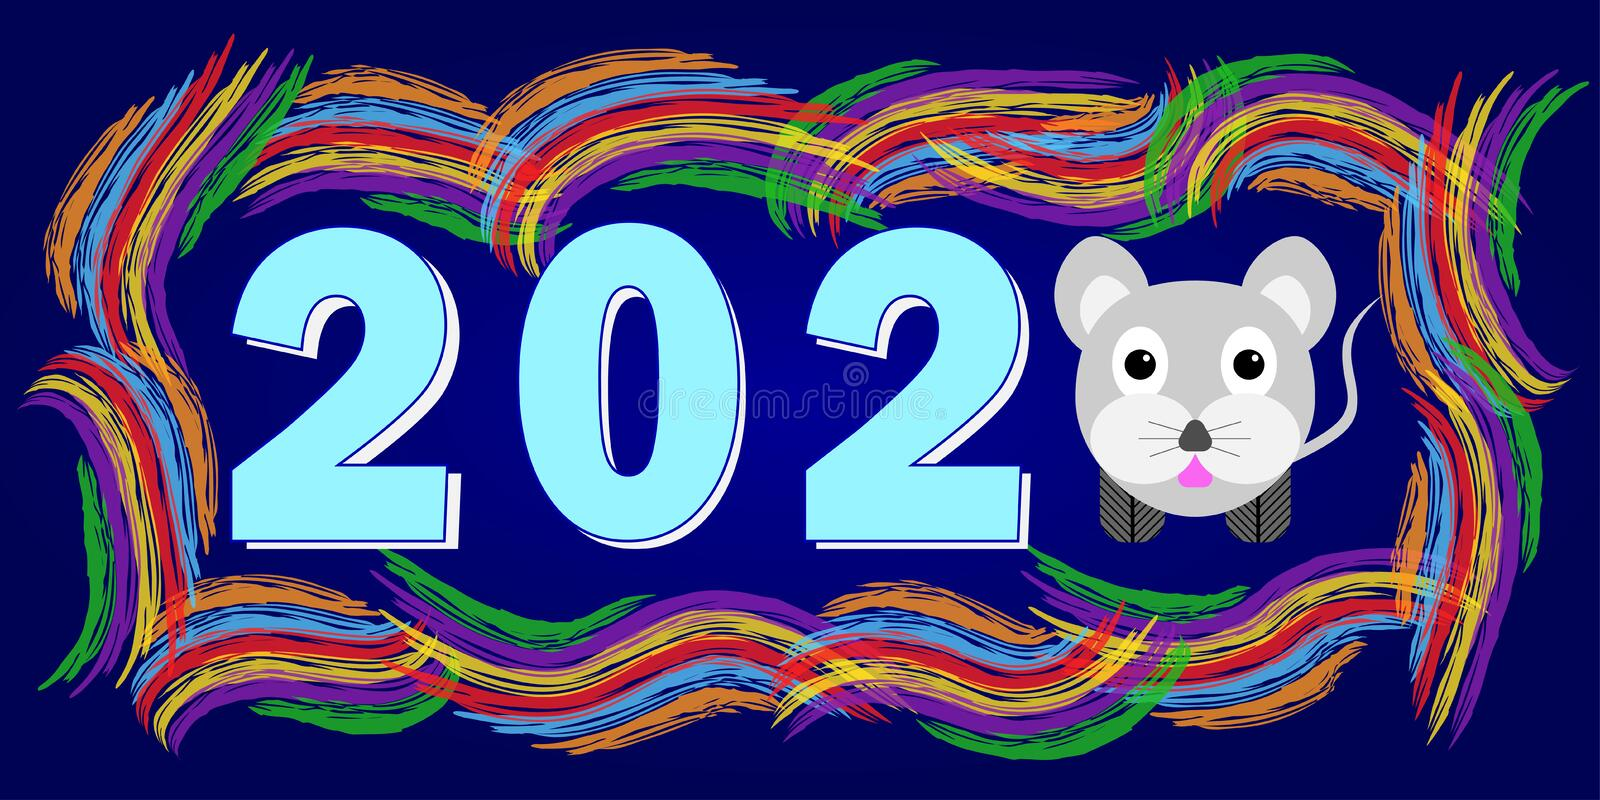 New Year greetings with text 2020 and mouse symbol of the year illustration - mouse.  stock photography